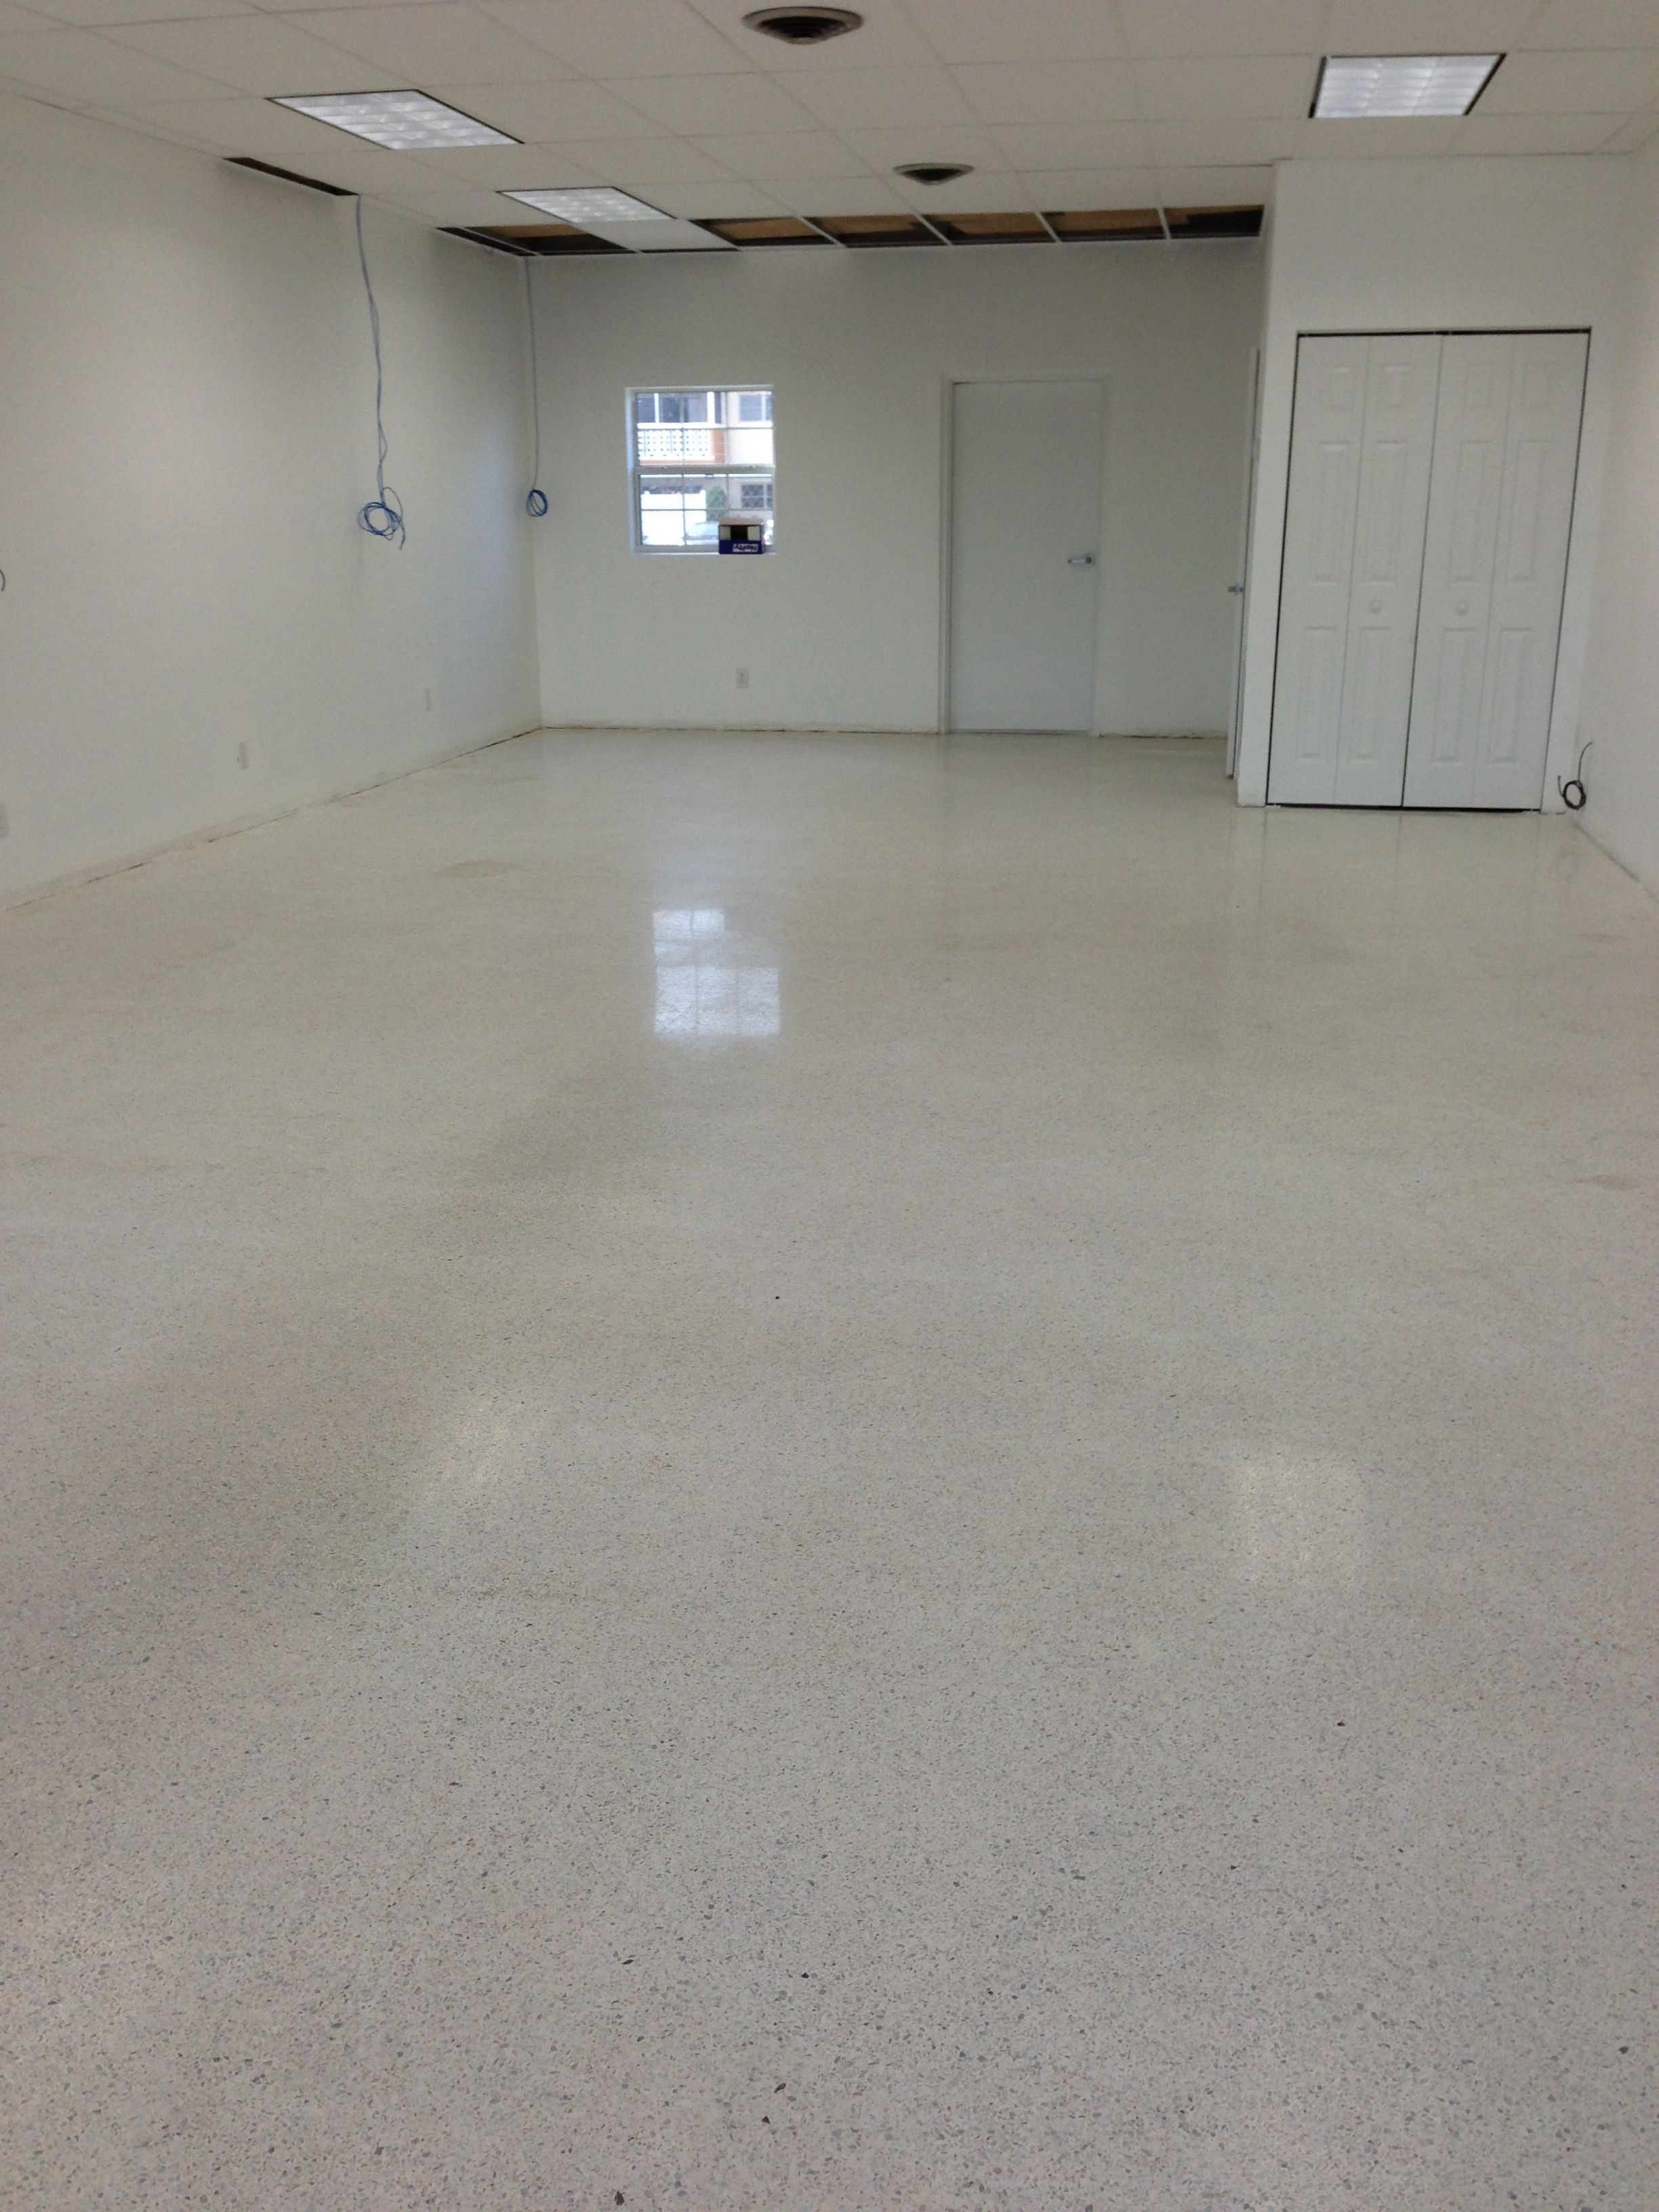 Our Terrazzo looks amazing thanks to (With